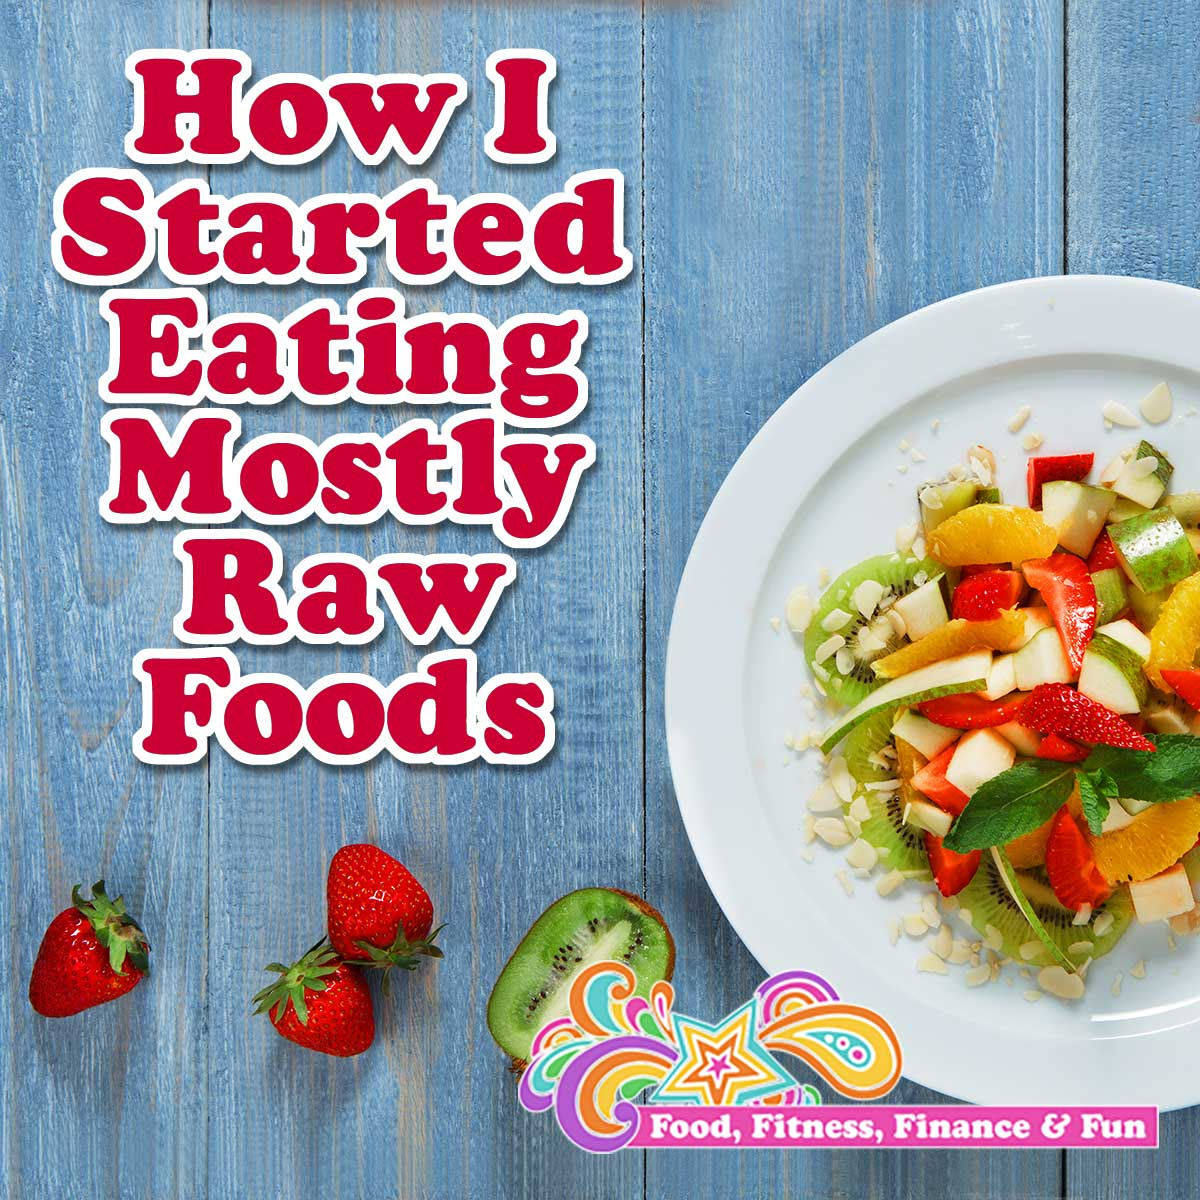 "How I Started Eating Mostly Raw Foods - I have been saying for the past 5 years I have been wanting to eat more raw. If you have been reading my blog posts over the past 3 years, you will see me intermittently post how I started ""Raw Monday"" or ""Raw Wednesday"", but I never maintain it for more than a few months."